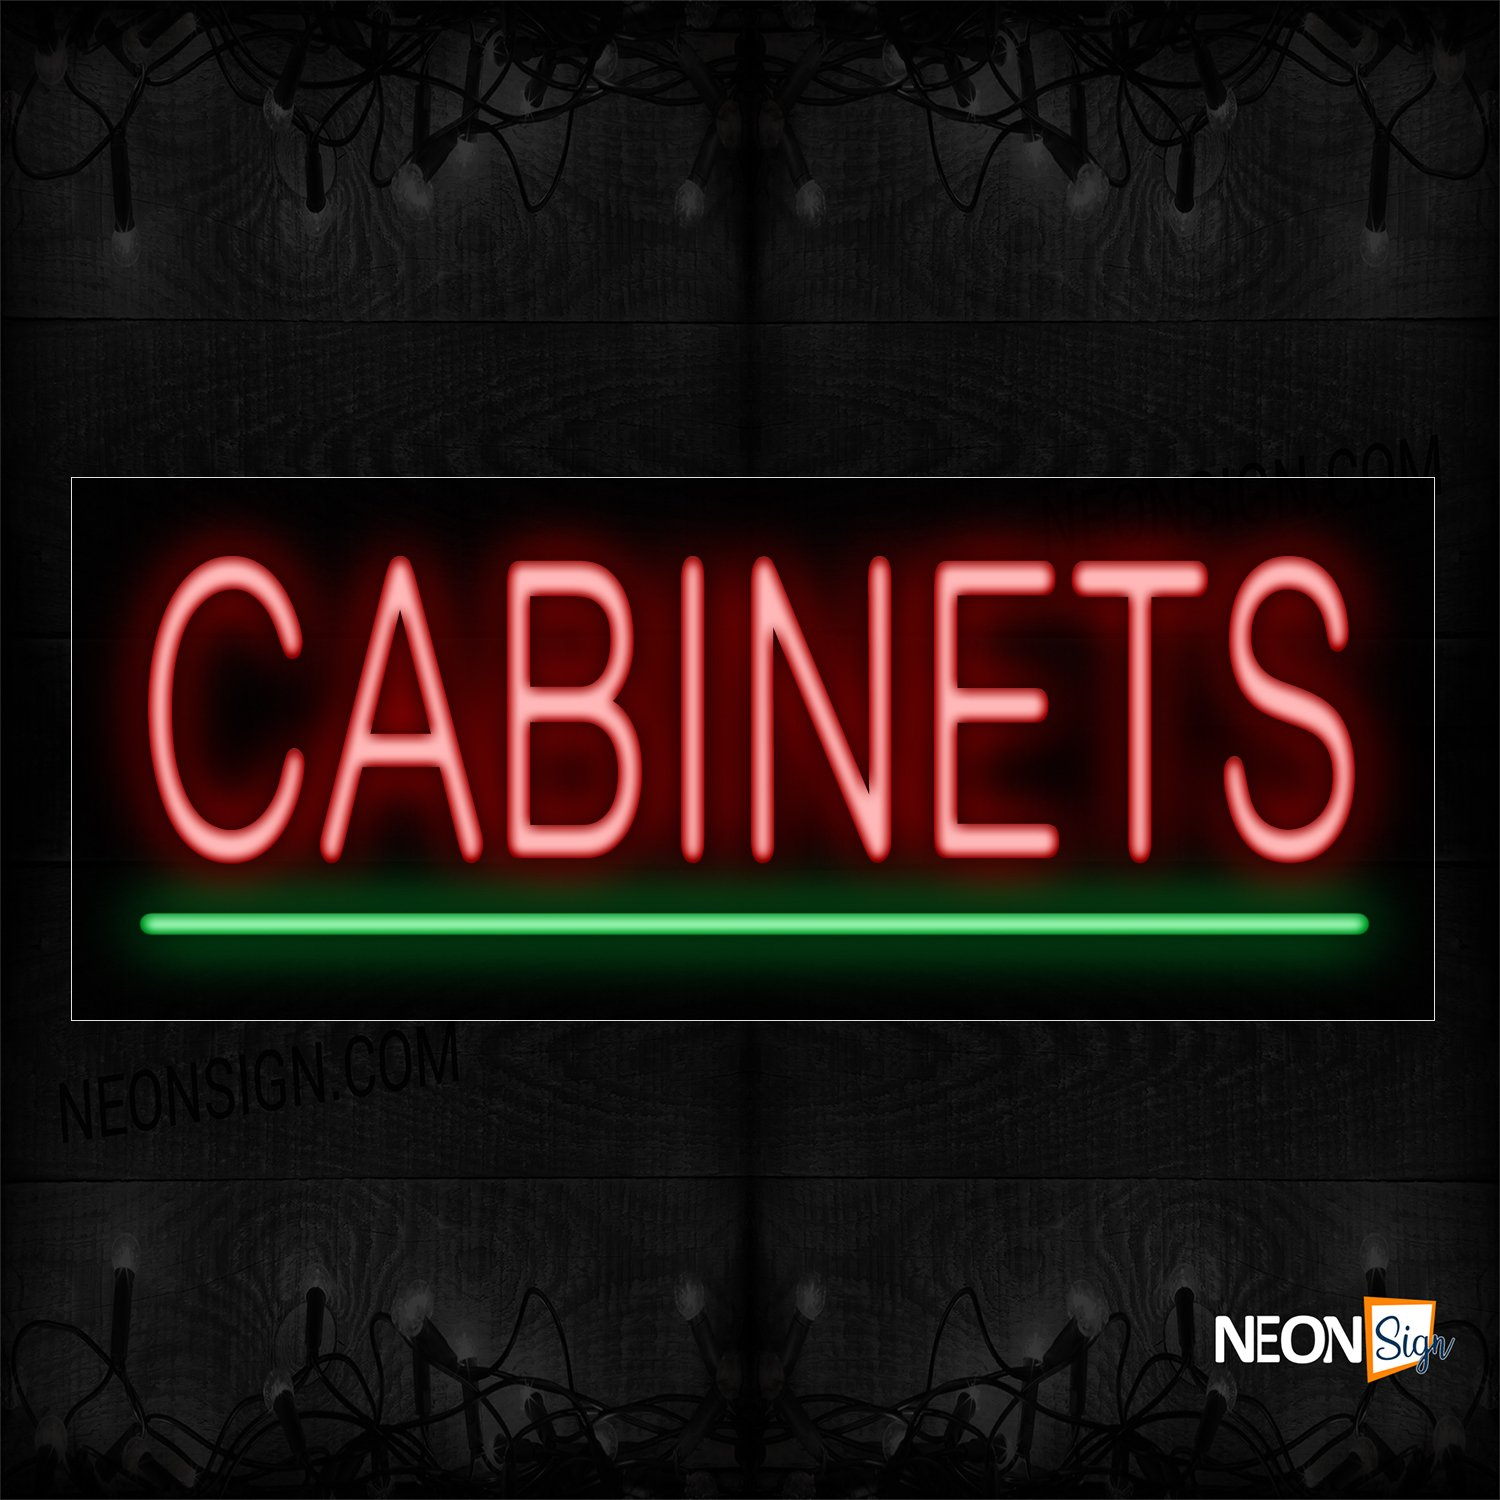 Image of 12358 Cabinets With Underline Neon Sign_10x24 Black Backing